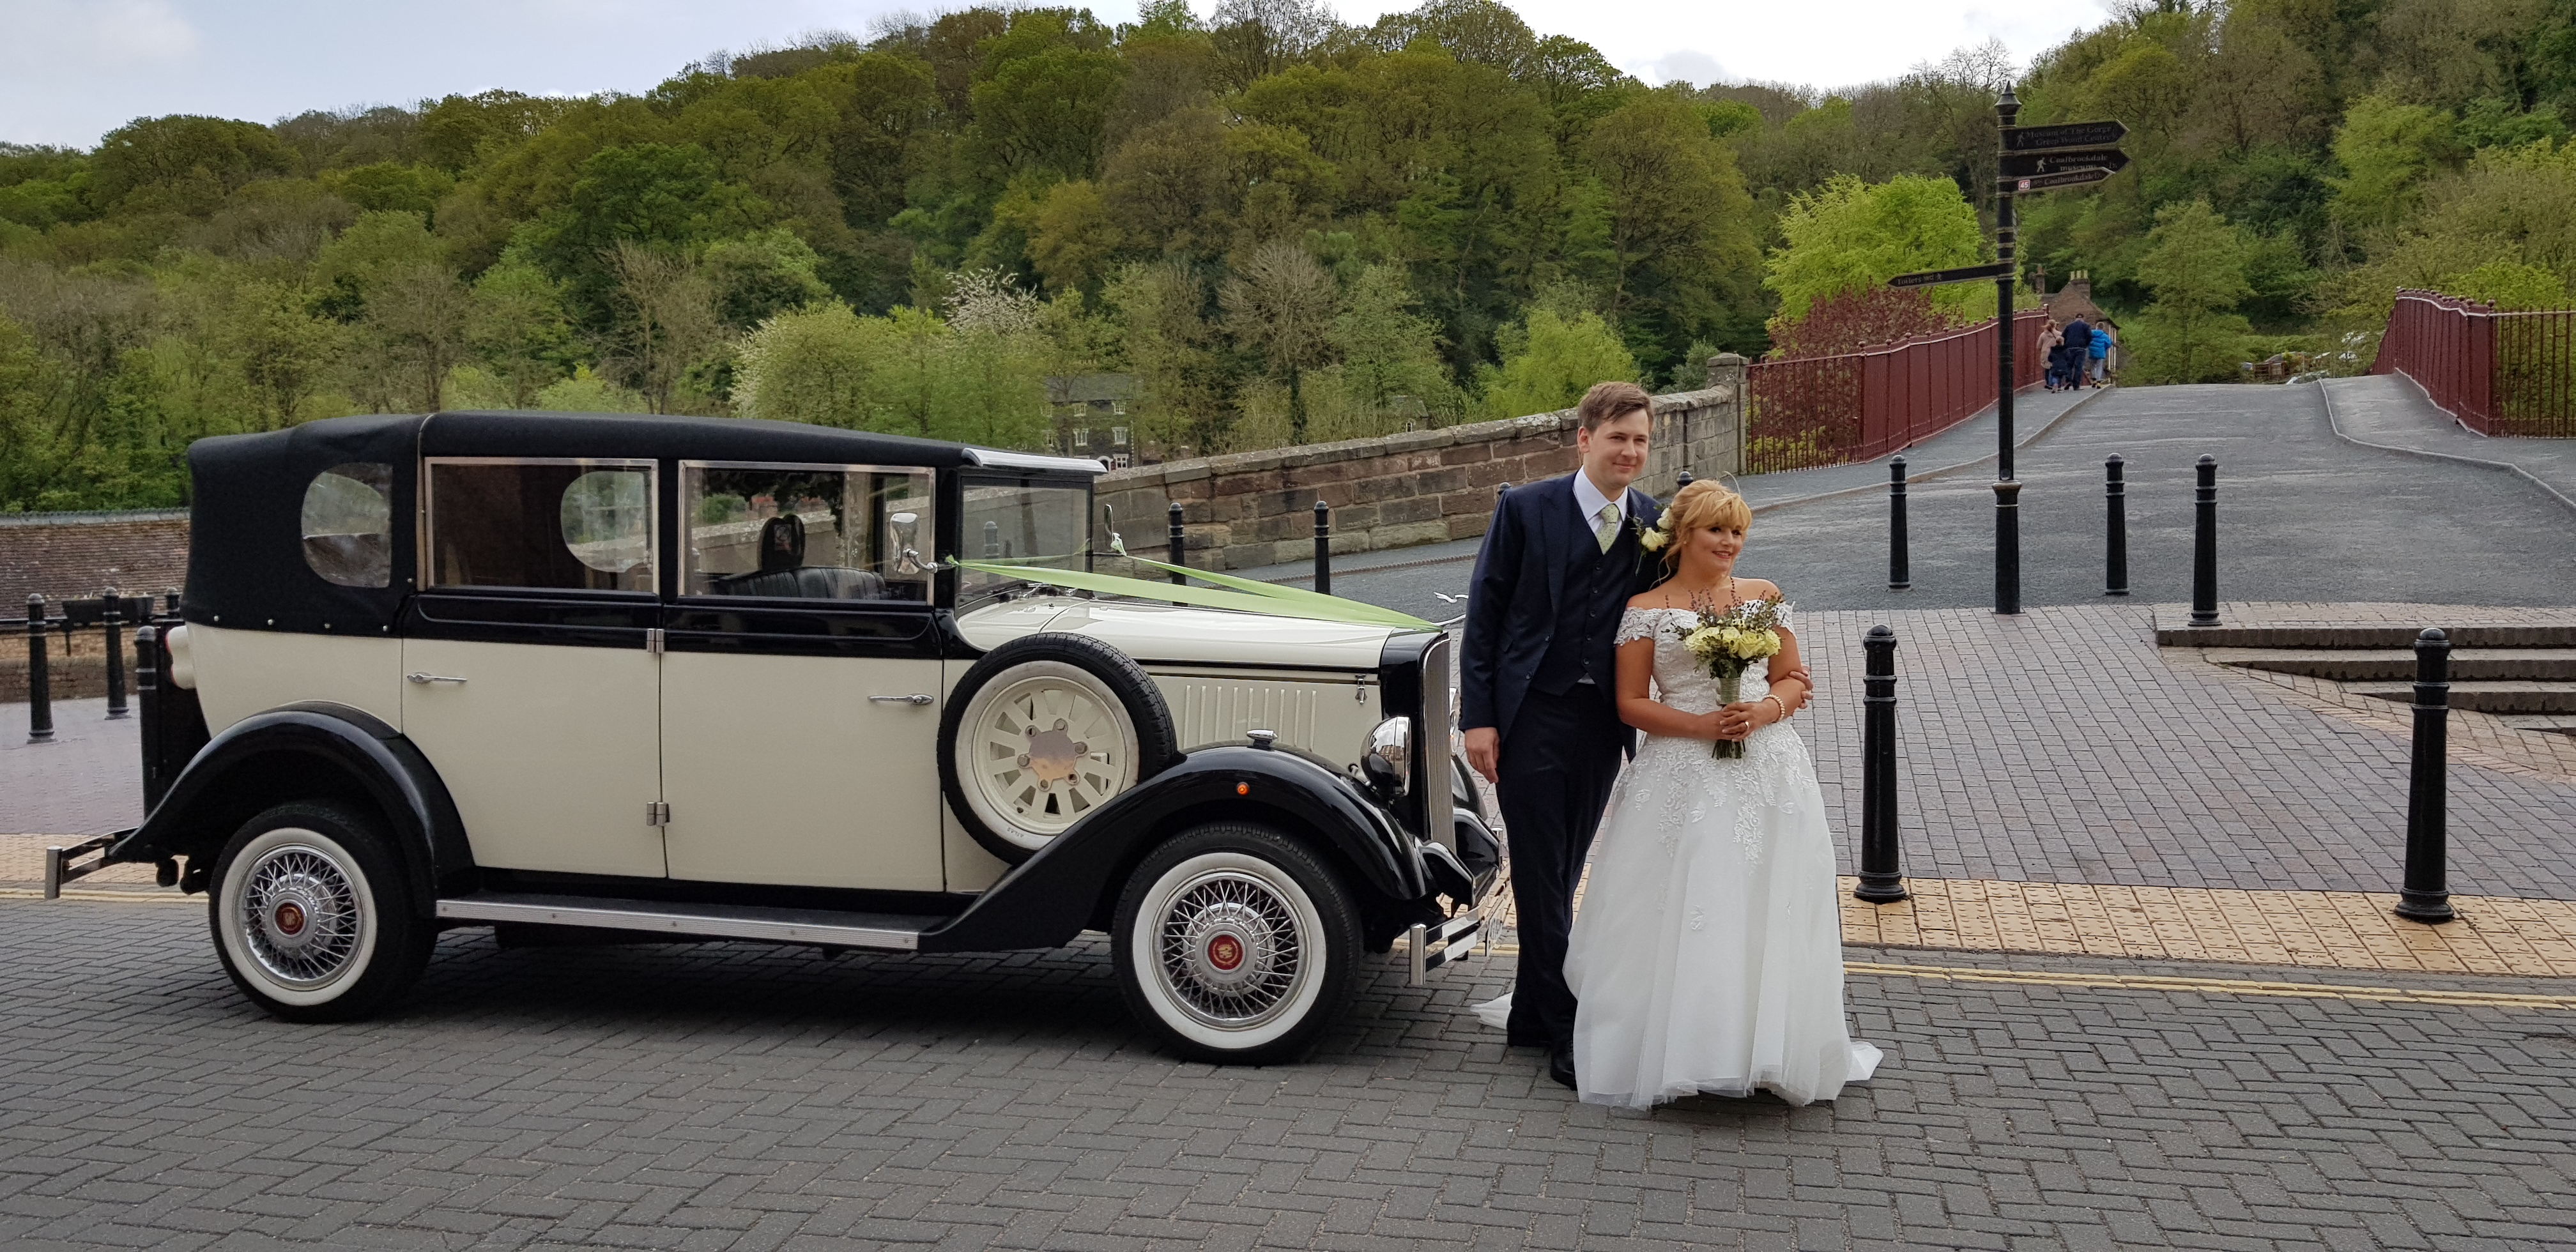 The ironbridge Wedding Pictures.